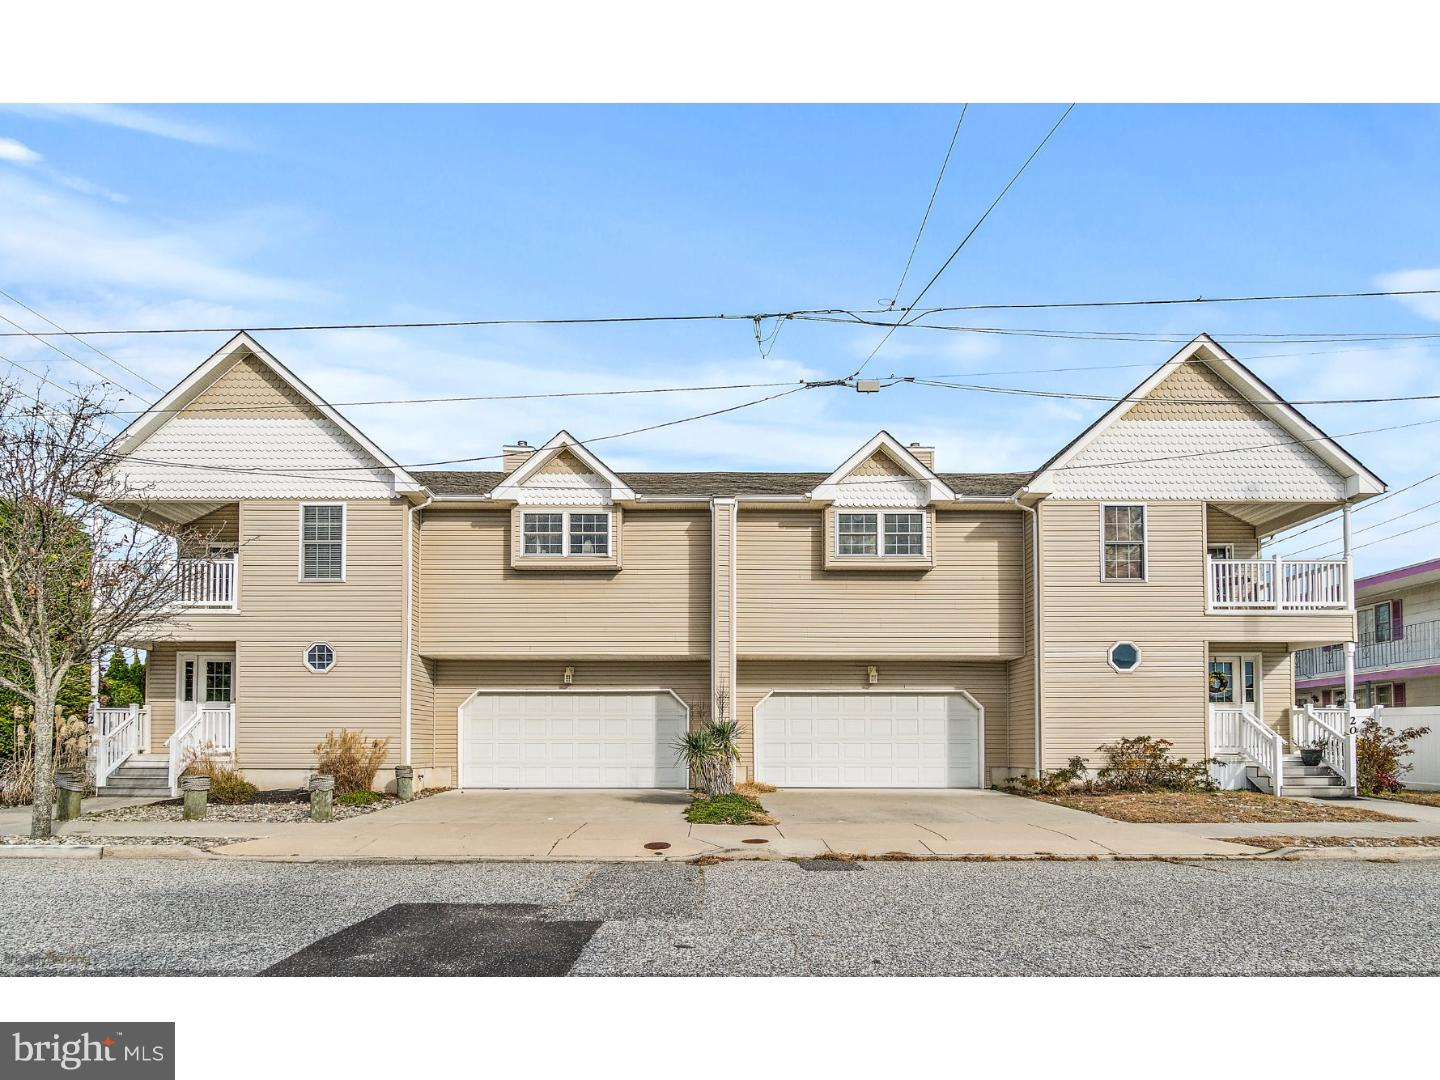 201 E ORCHID ROAD, WILDWOOD CREST, NJ 08260